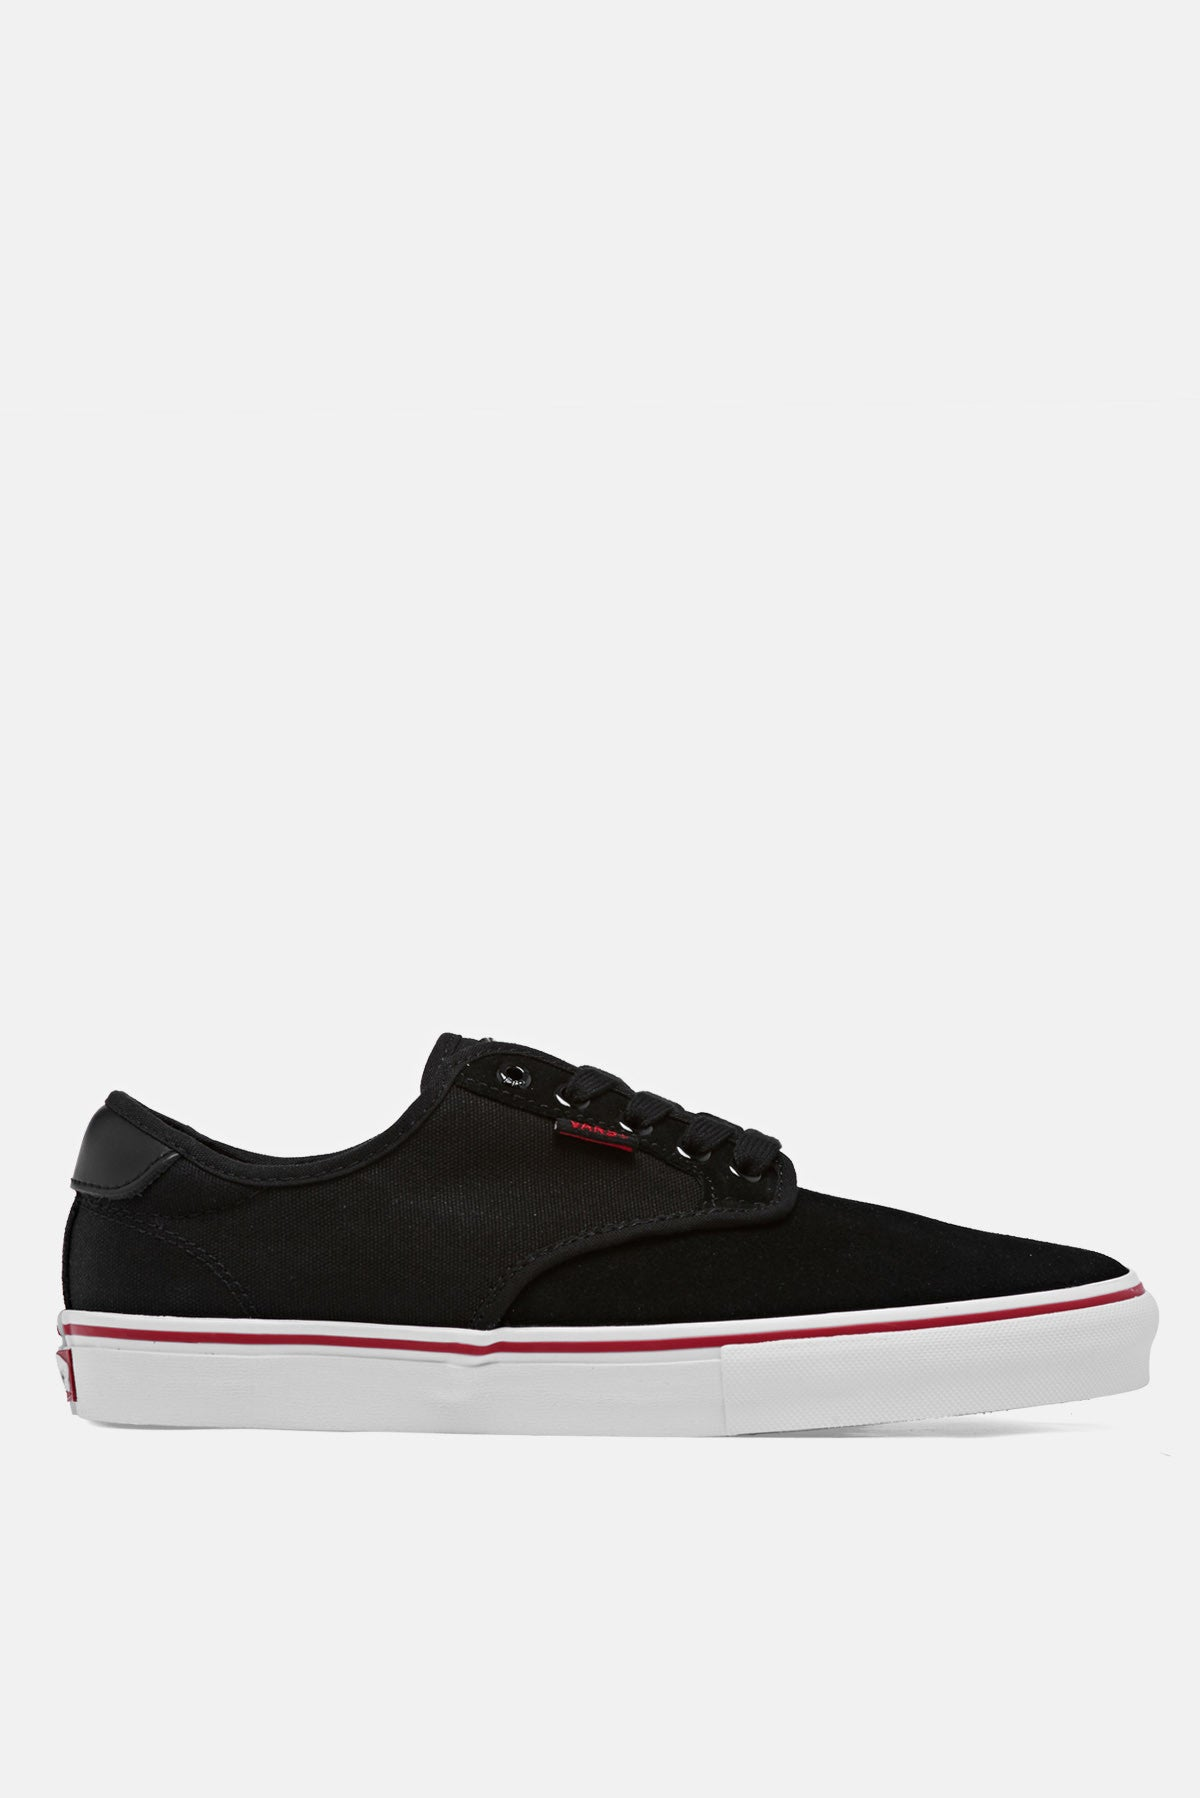 8b7a7676331dda Vans Chima Ferguson Pro Shoes available from Priory